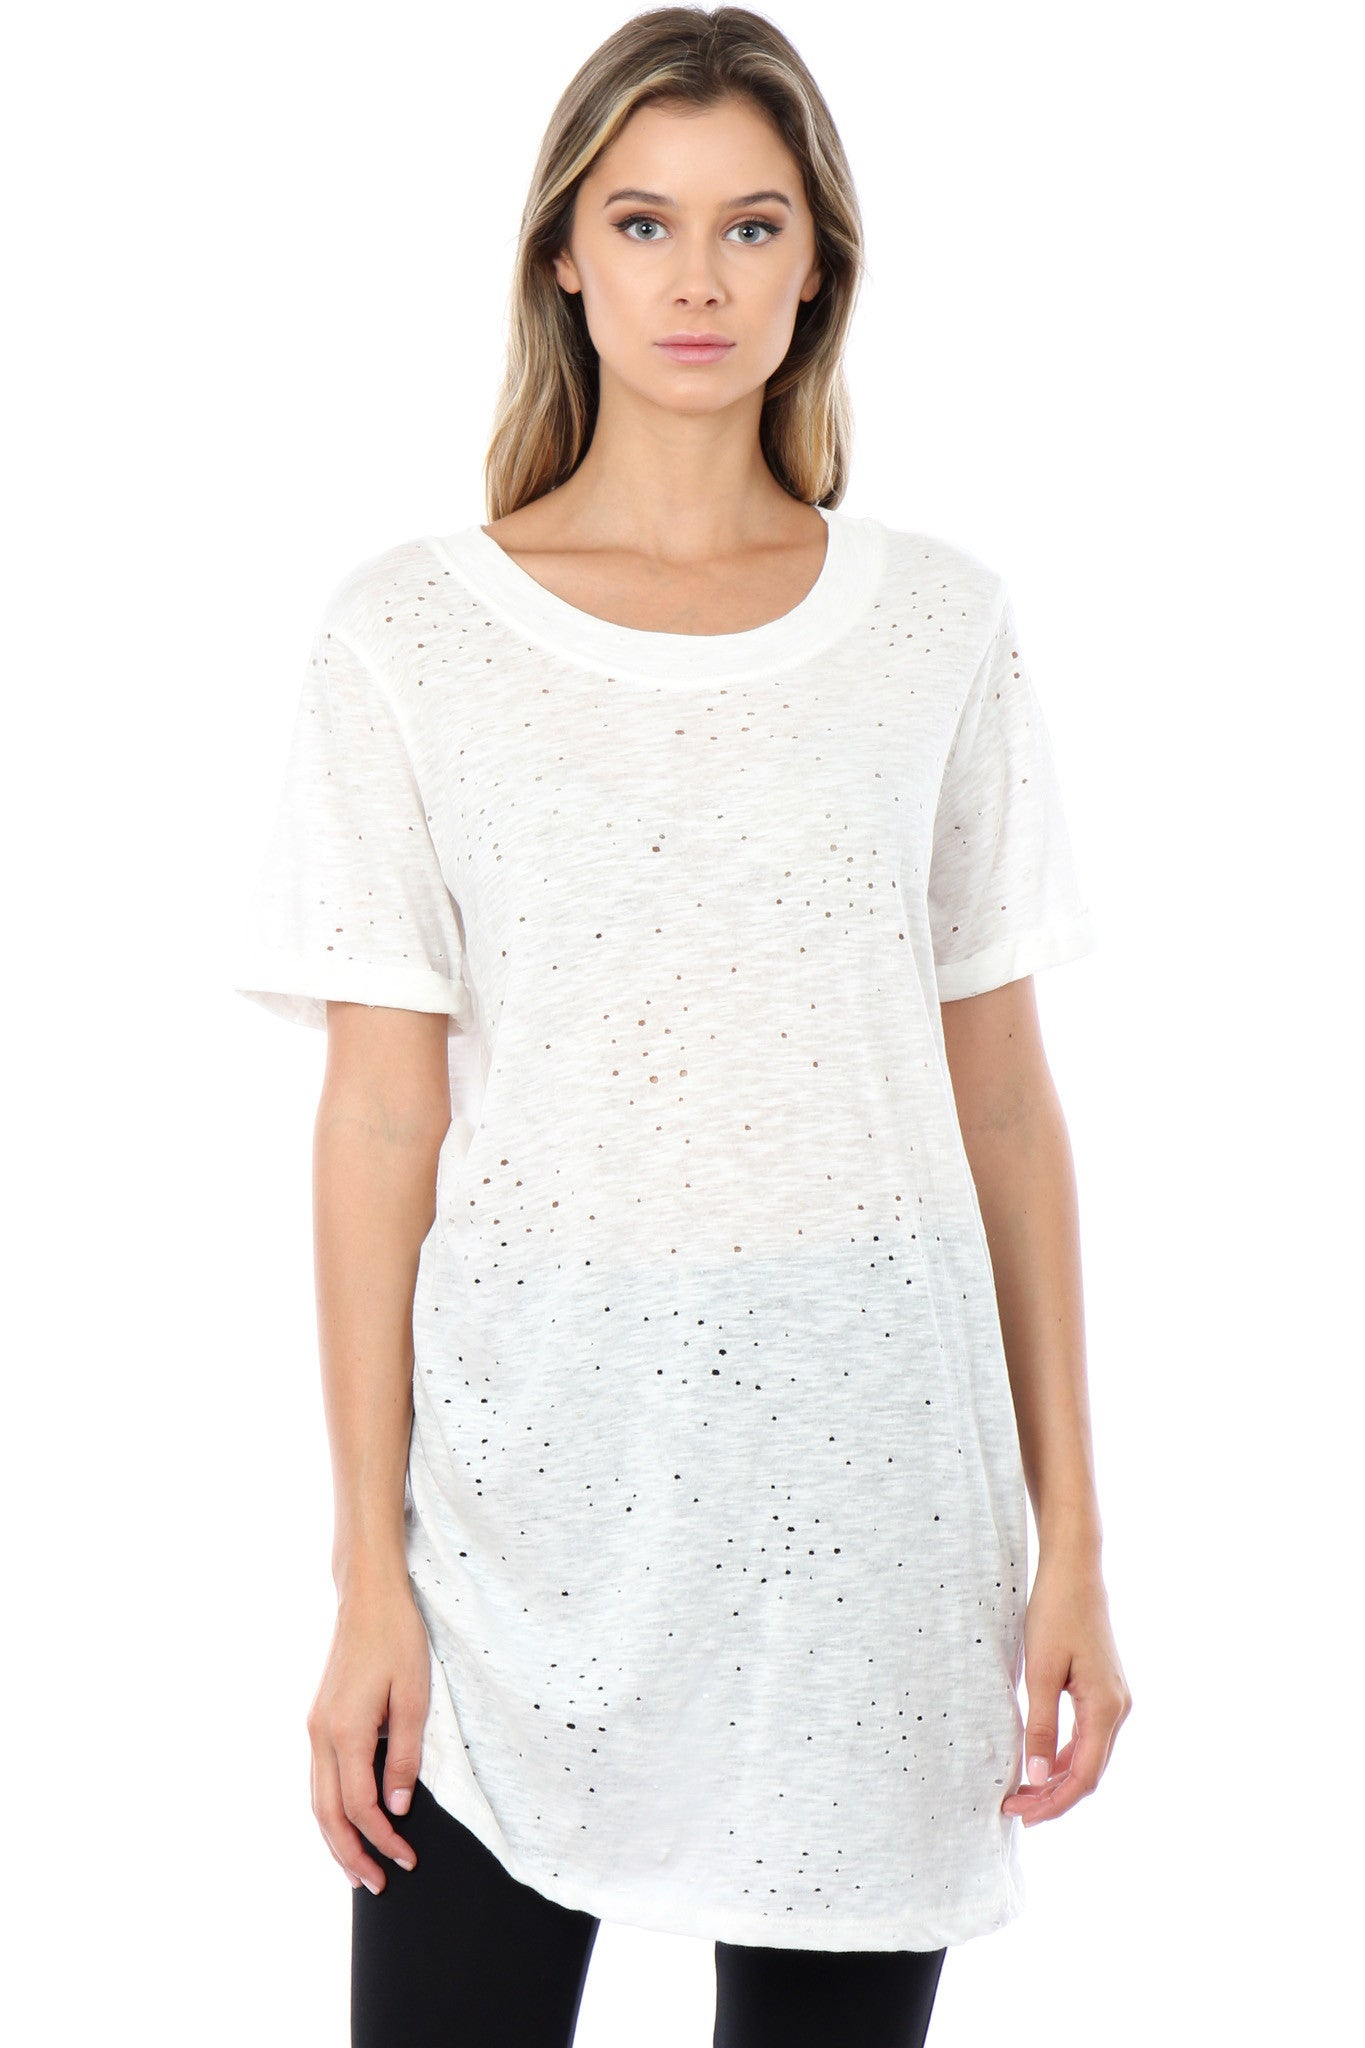 Off White Gail Destroyed T Shirt Womens Top Tee Jack Meets Kate